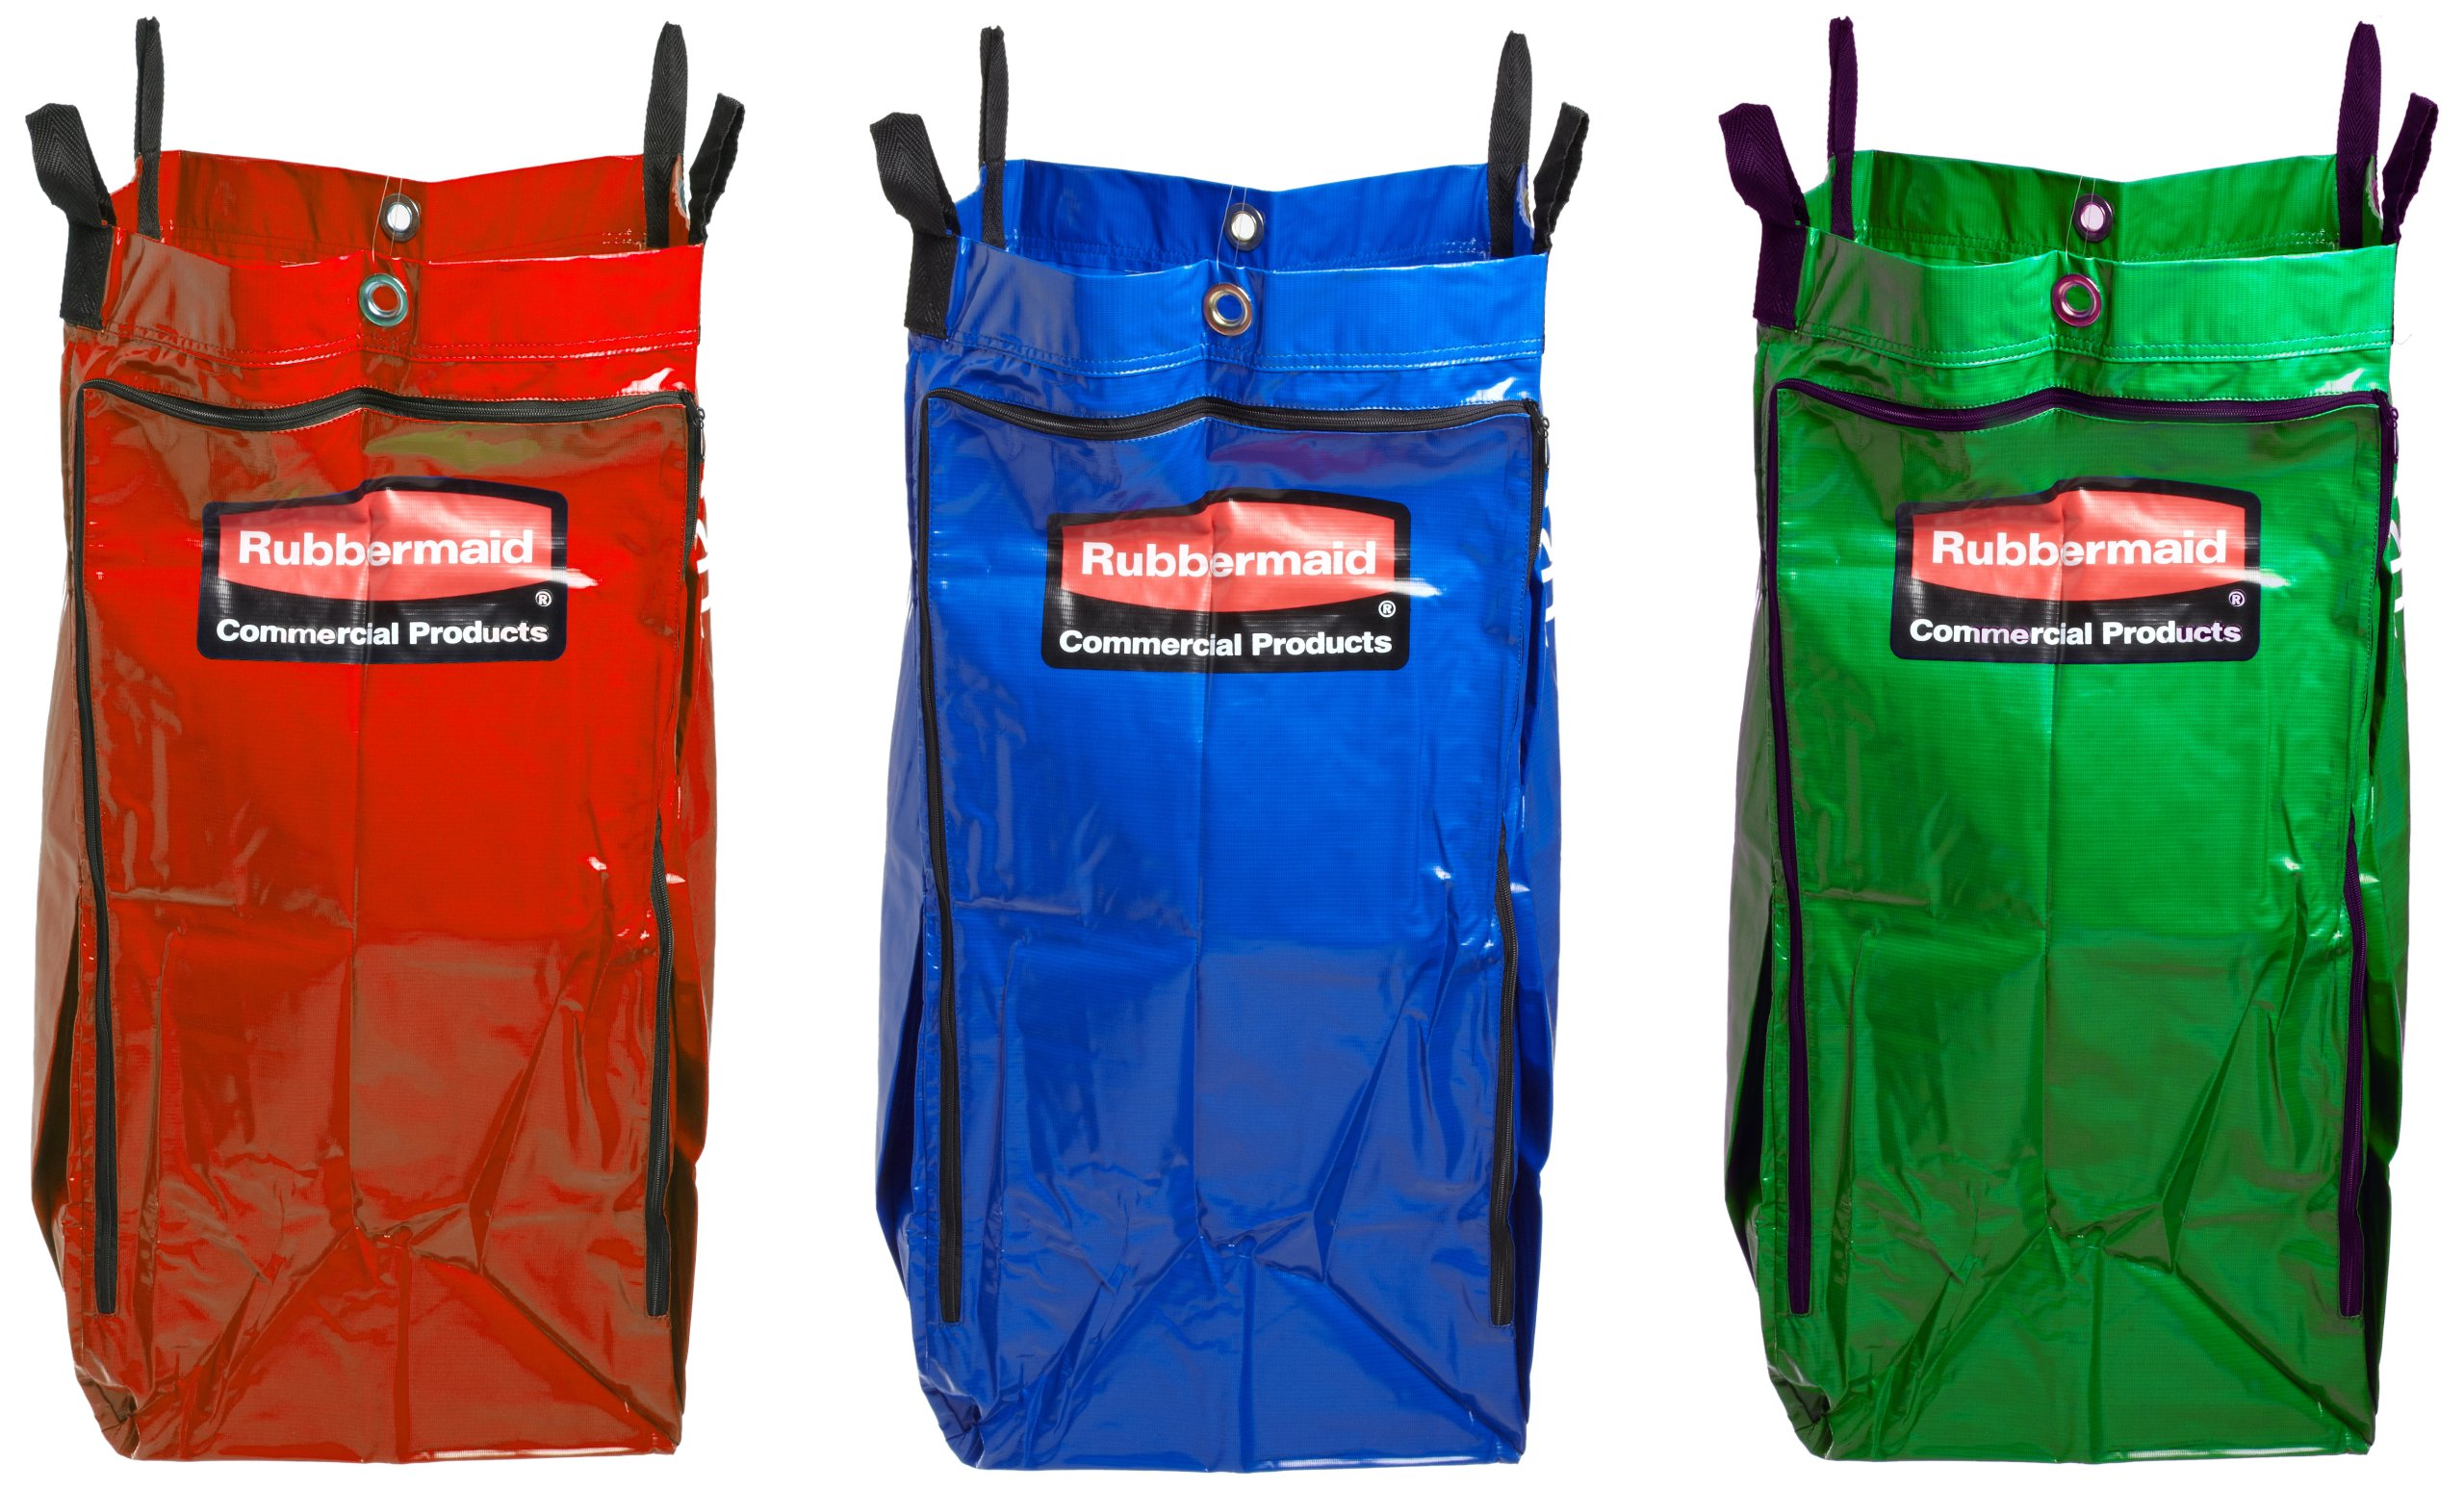 Rubbermaid 9T93-01 34 gallon Capacity, 33'' Length x 10-1/2'' Width x 17-1/2'' Height, 3 Pieces Recycling Bag with Universal Recycling Symbol Set by Rubbermaid Commercial Products